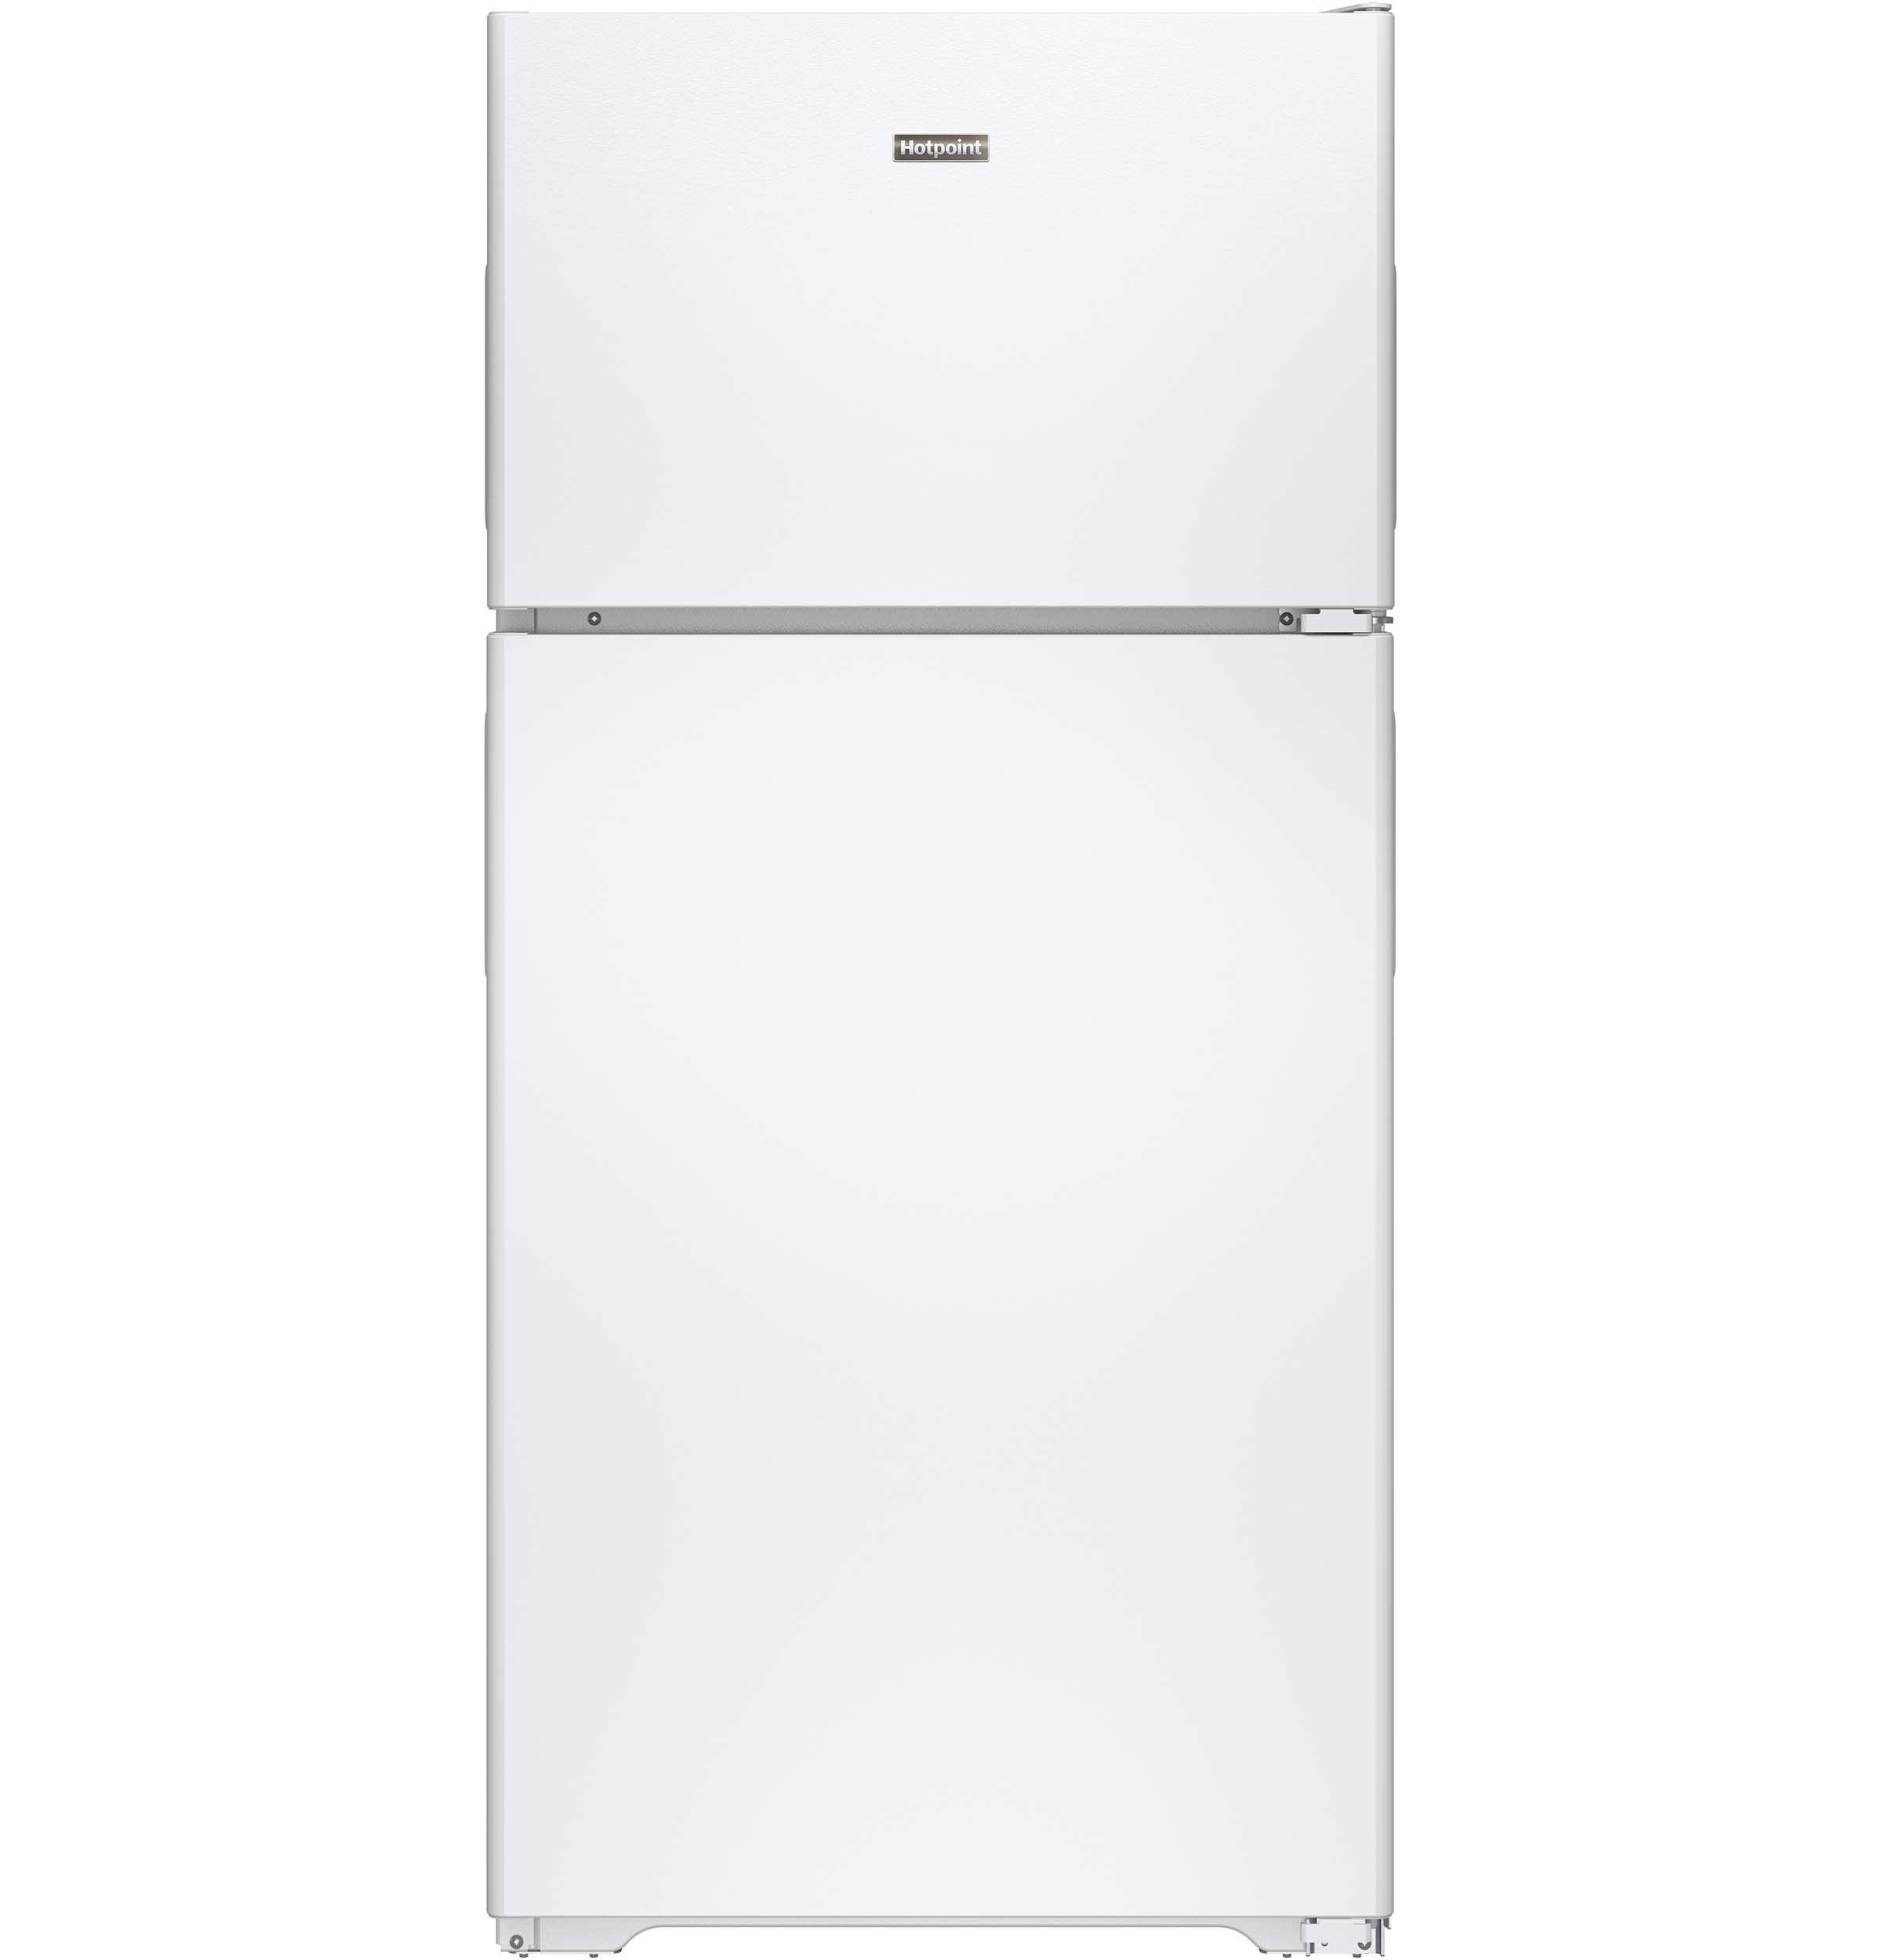 Hotpoint Hotpoint® ENERGY STAR® 14.6 Cu. Ft. Recessed Handle Top-Freezer Refrigerator